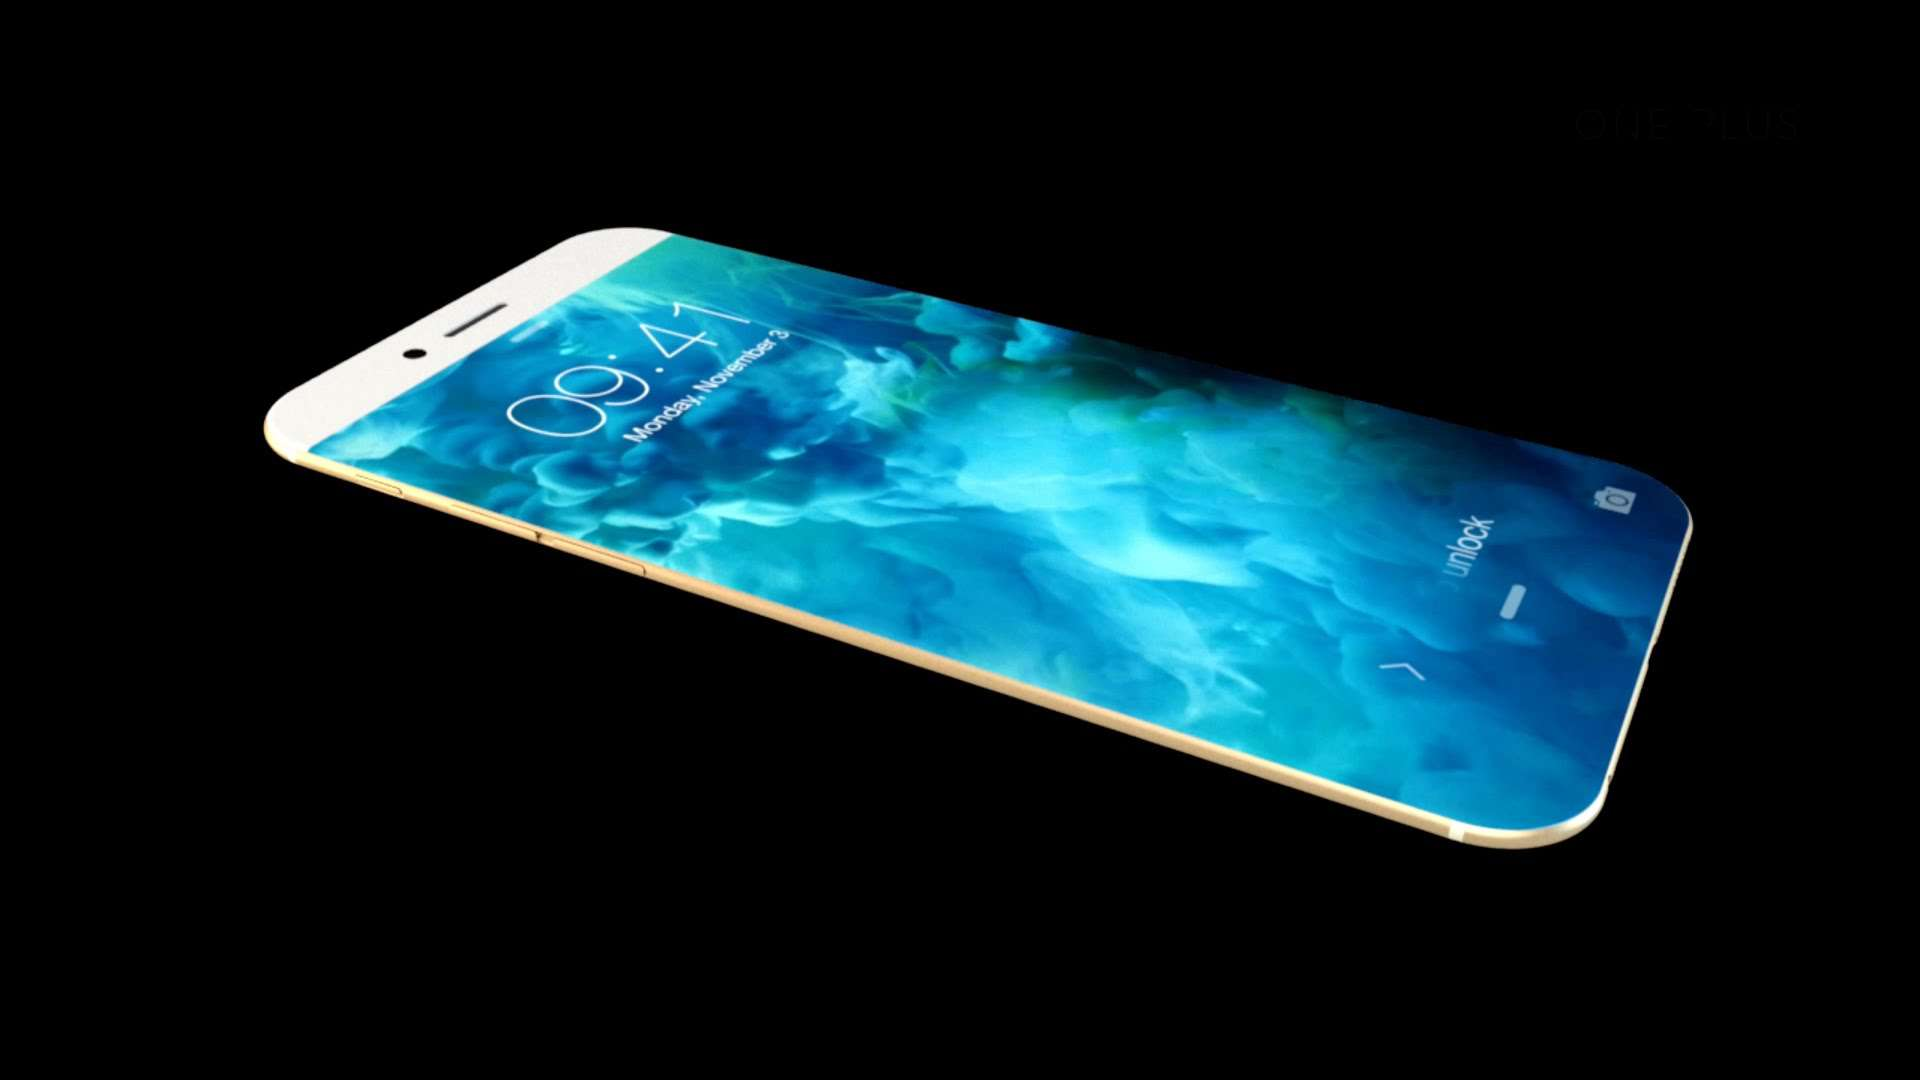 IPHONE 7: A WHOLE NEW LOOK WITHOUT A HOME BUTTON